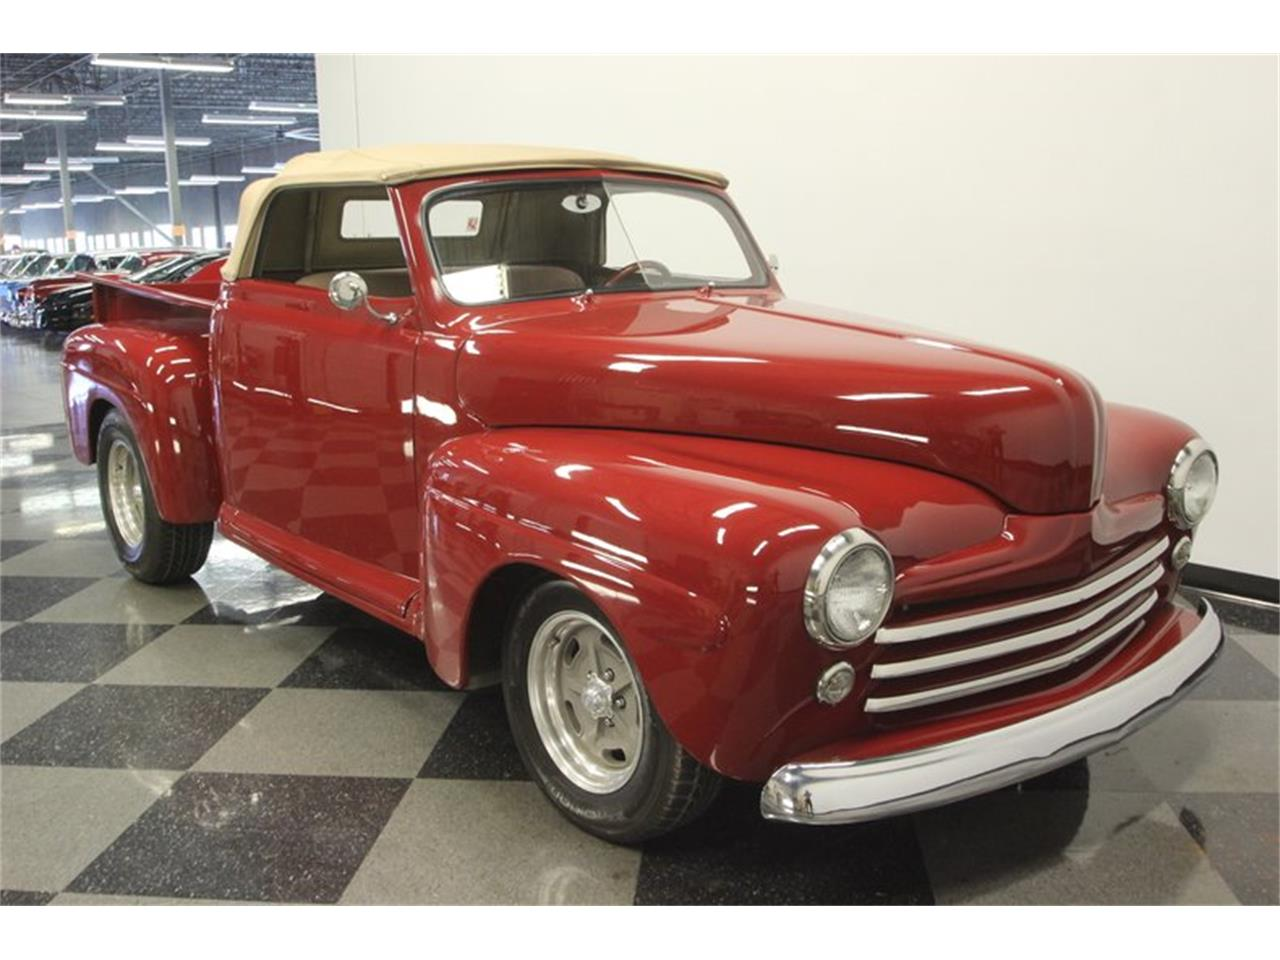 Large Picture of Classic '48 Ford F1 located in Lutz Florida - $33,995.00 - QD66